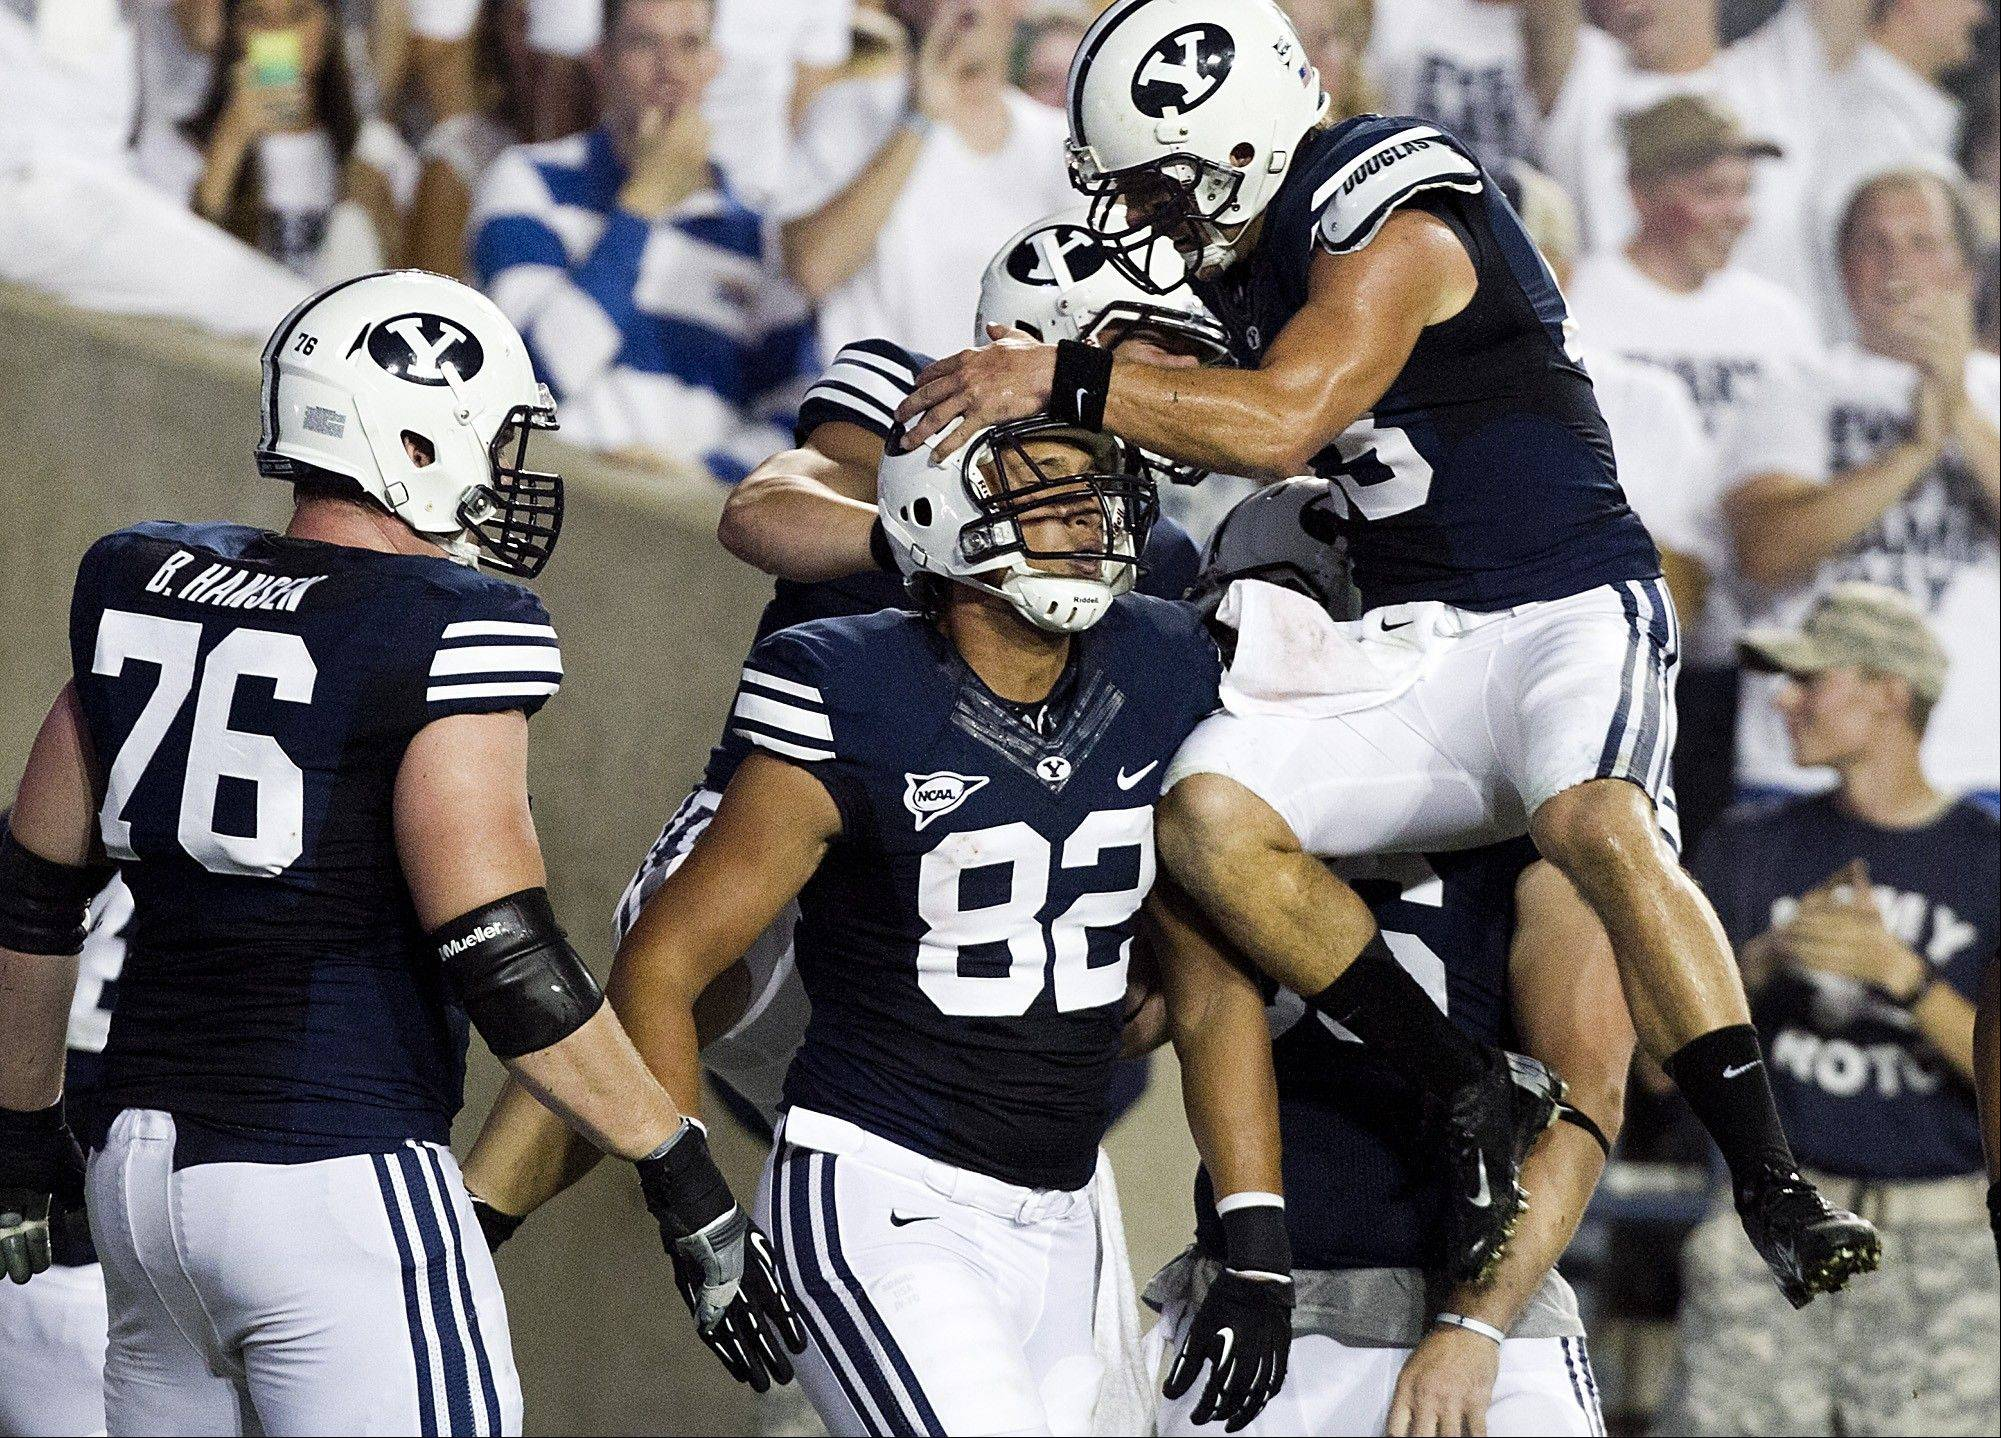 BYU's Kaneakua Friel, center, is congratulated by quarterback Riley Nelson after a touchdown against Washington State on Thursday in Provo, Utah.